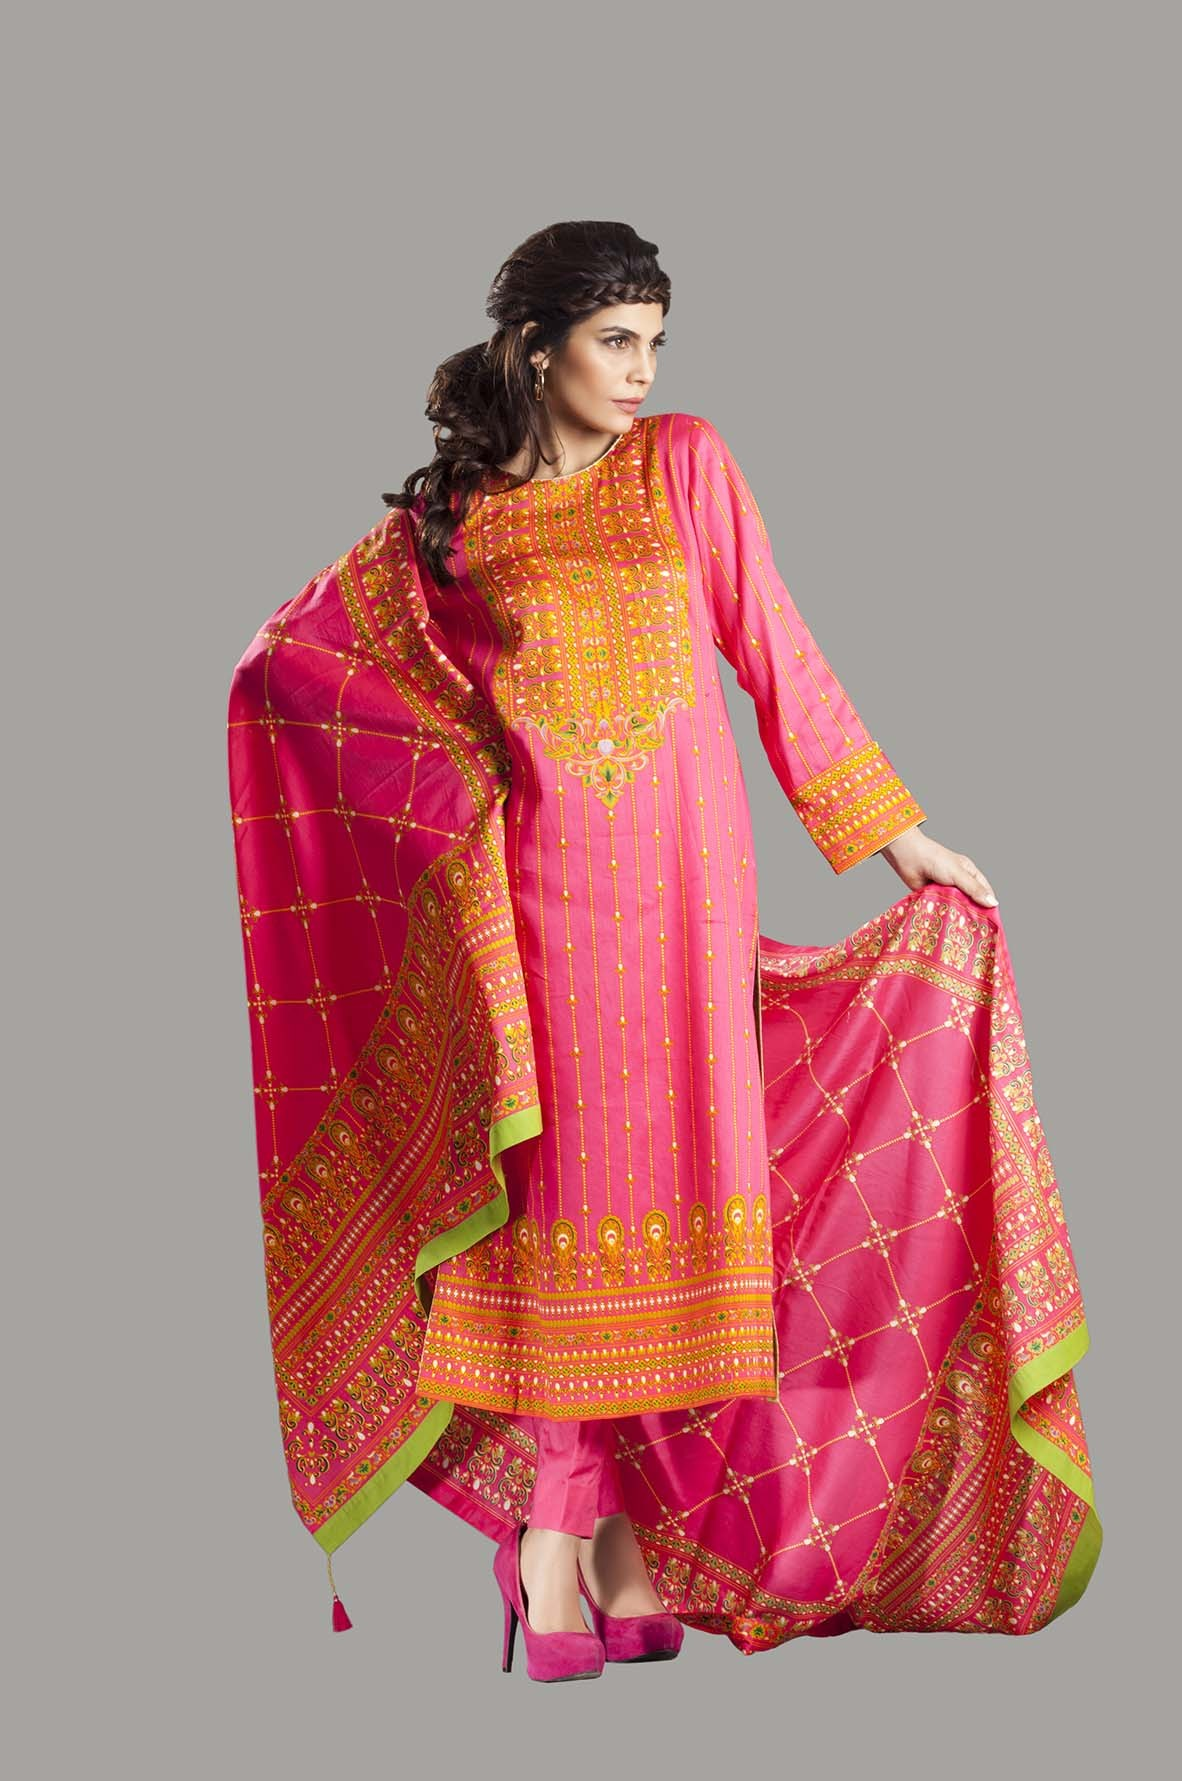 Kayseria Latest Winter Prints Best Shawls Dresses 2014: Kayseria New Fall/Winter Finer Cambric Collection For Women